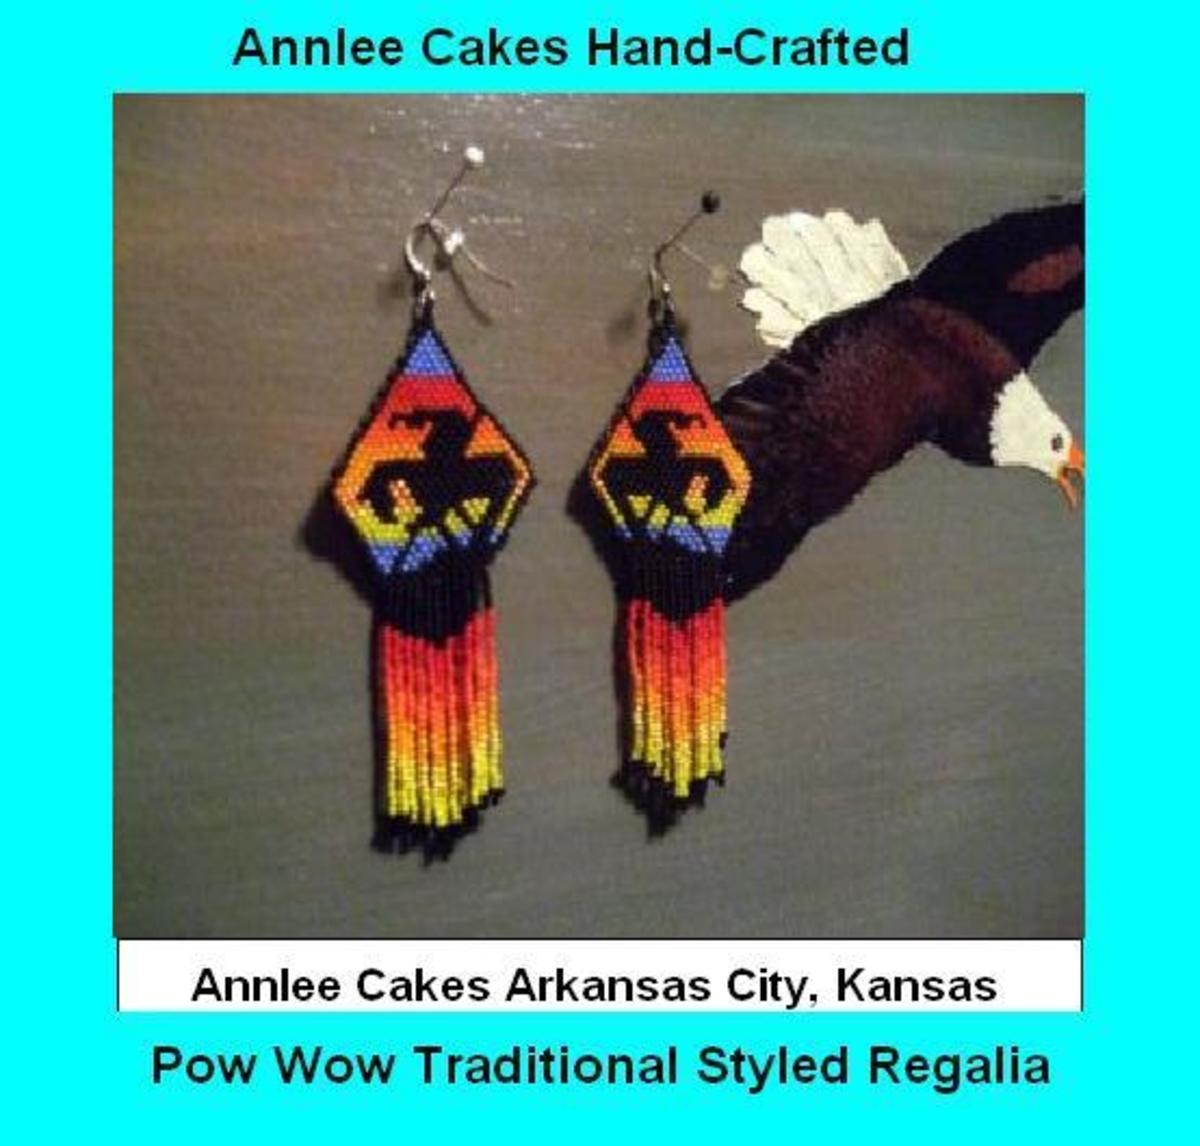 A special End Of Trails pair of earrings by Annlee